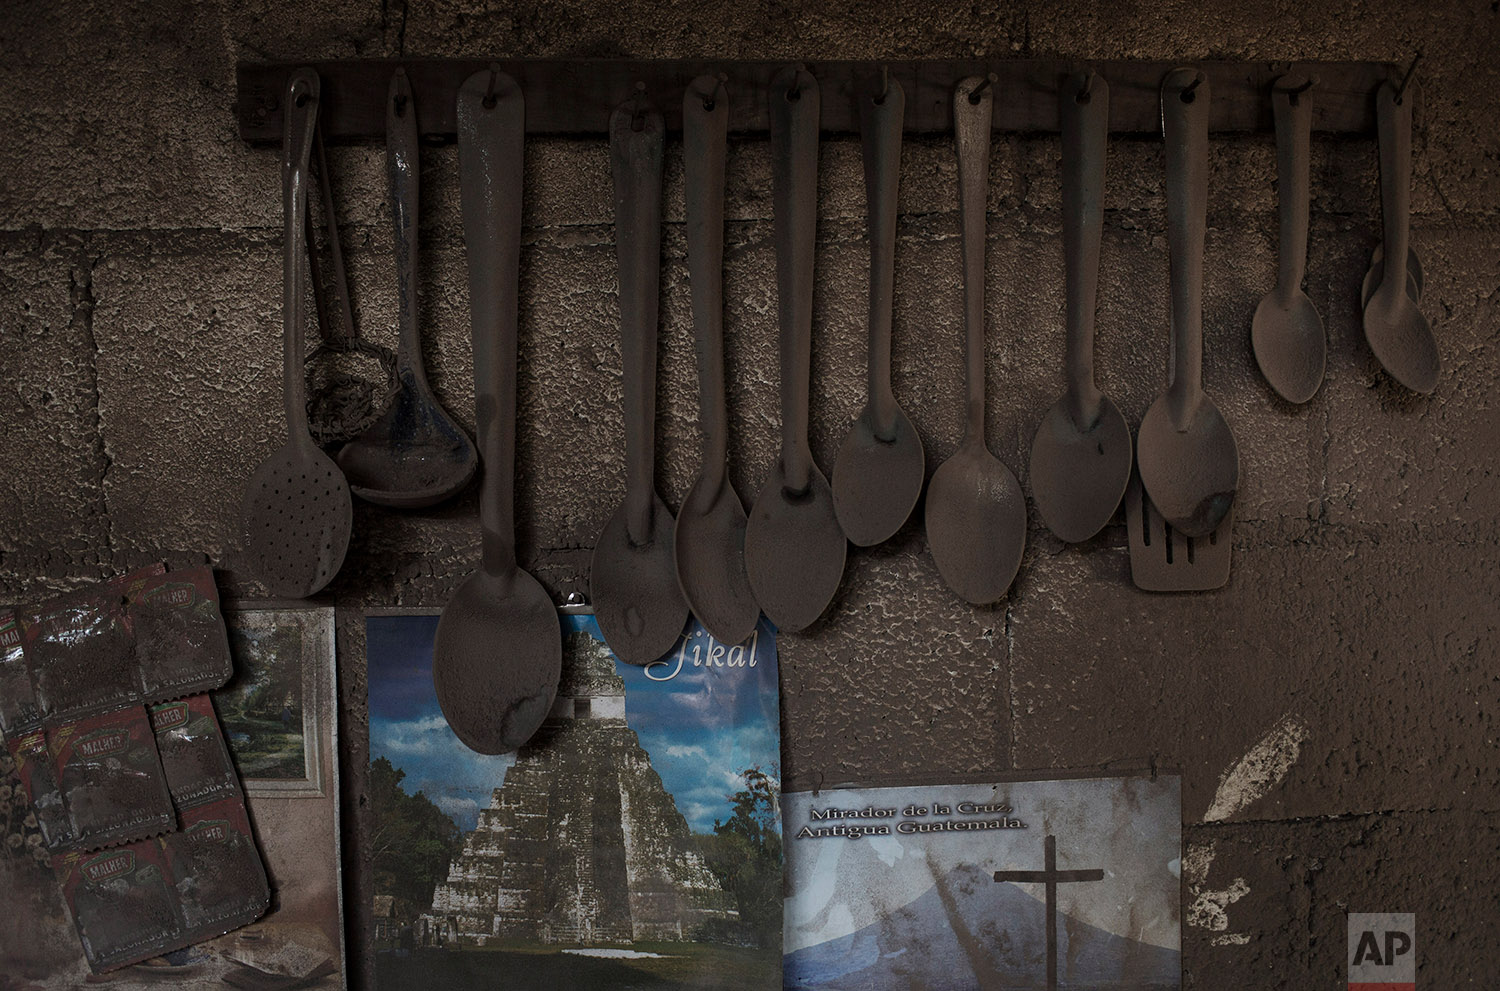 This June 9, 2018 photo shows kitchen utensils hanging above posters promoting the Mayan ruins Tikal and the Mirador de la Cruz, dusted with volcanic ash spewed by the Volcan de Fuego or Volcano of Fire, in San Miguel Los Lotes, Guatemala. (AP Photo/Rodrigo Abd)